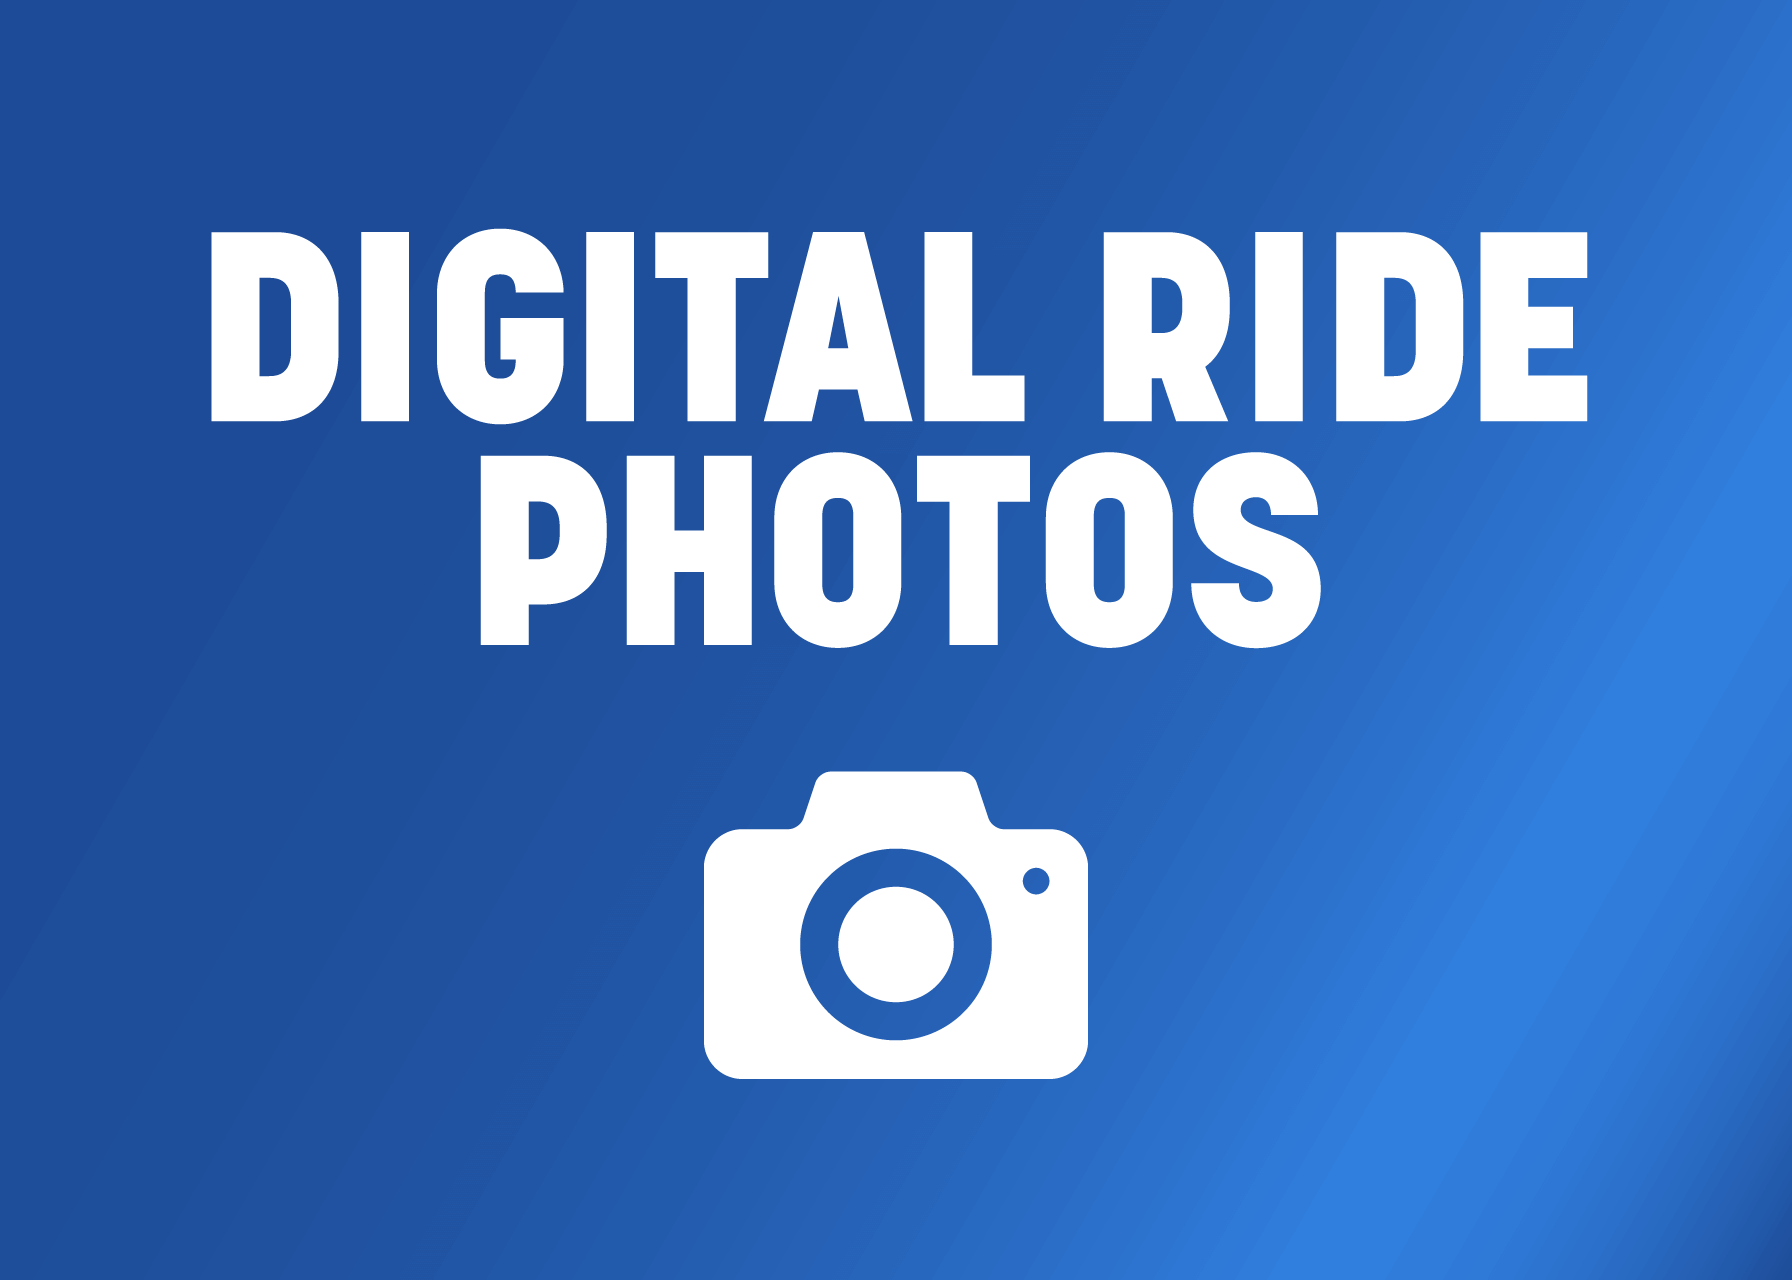 Unlimited Digital Ride Photos